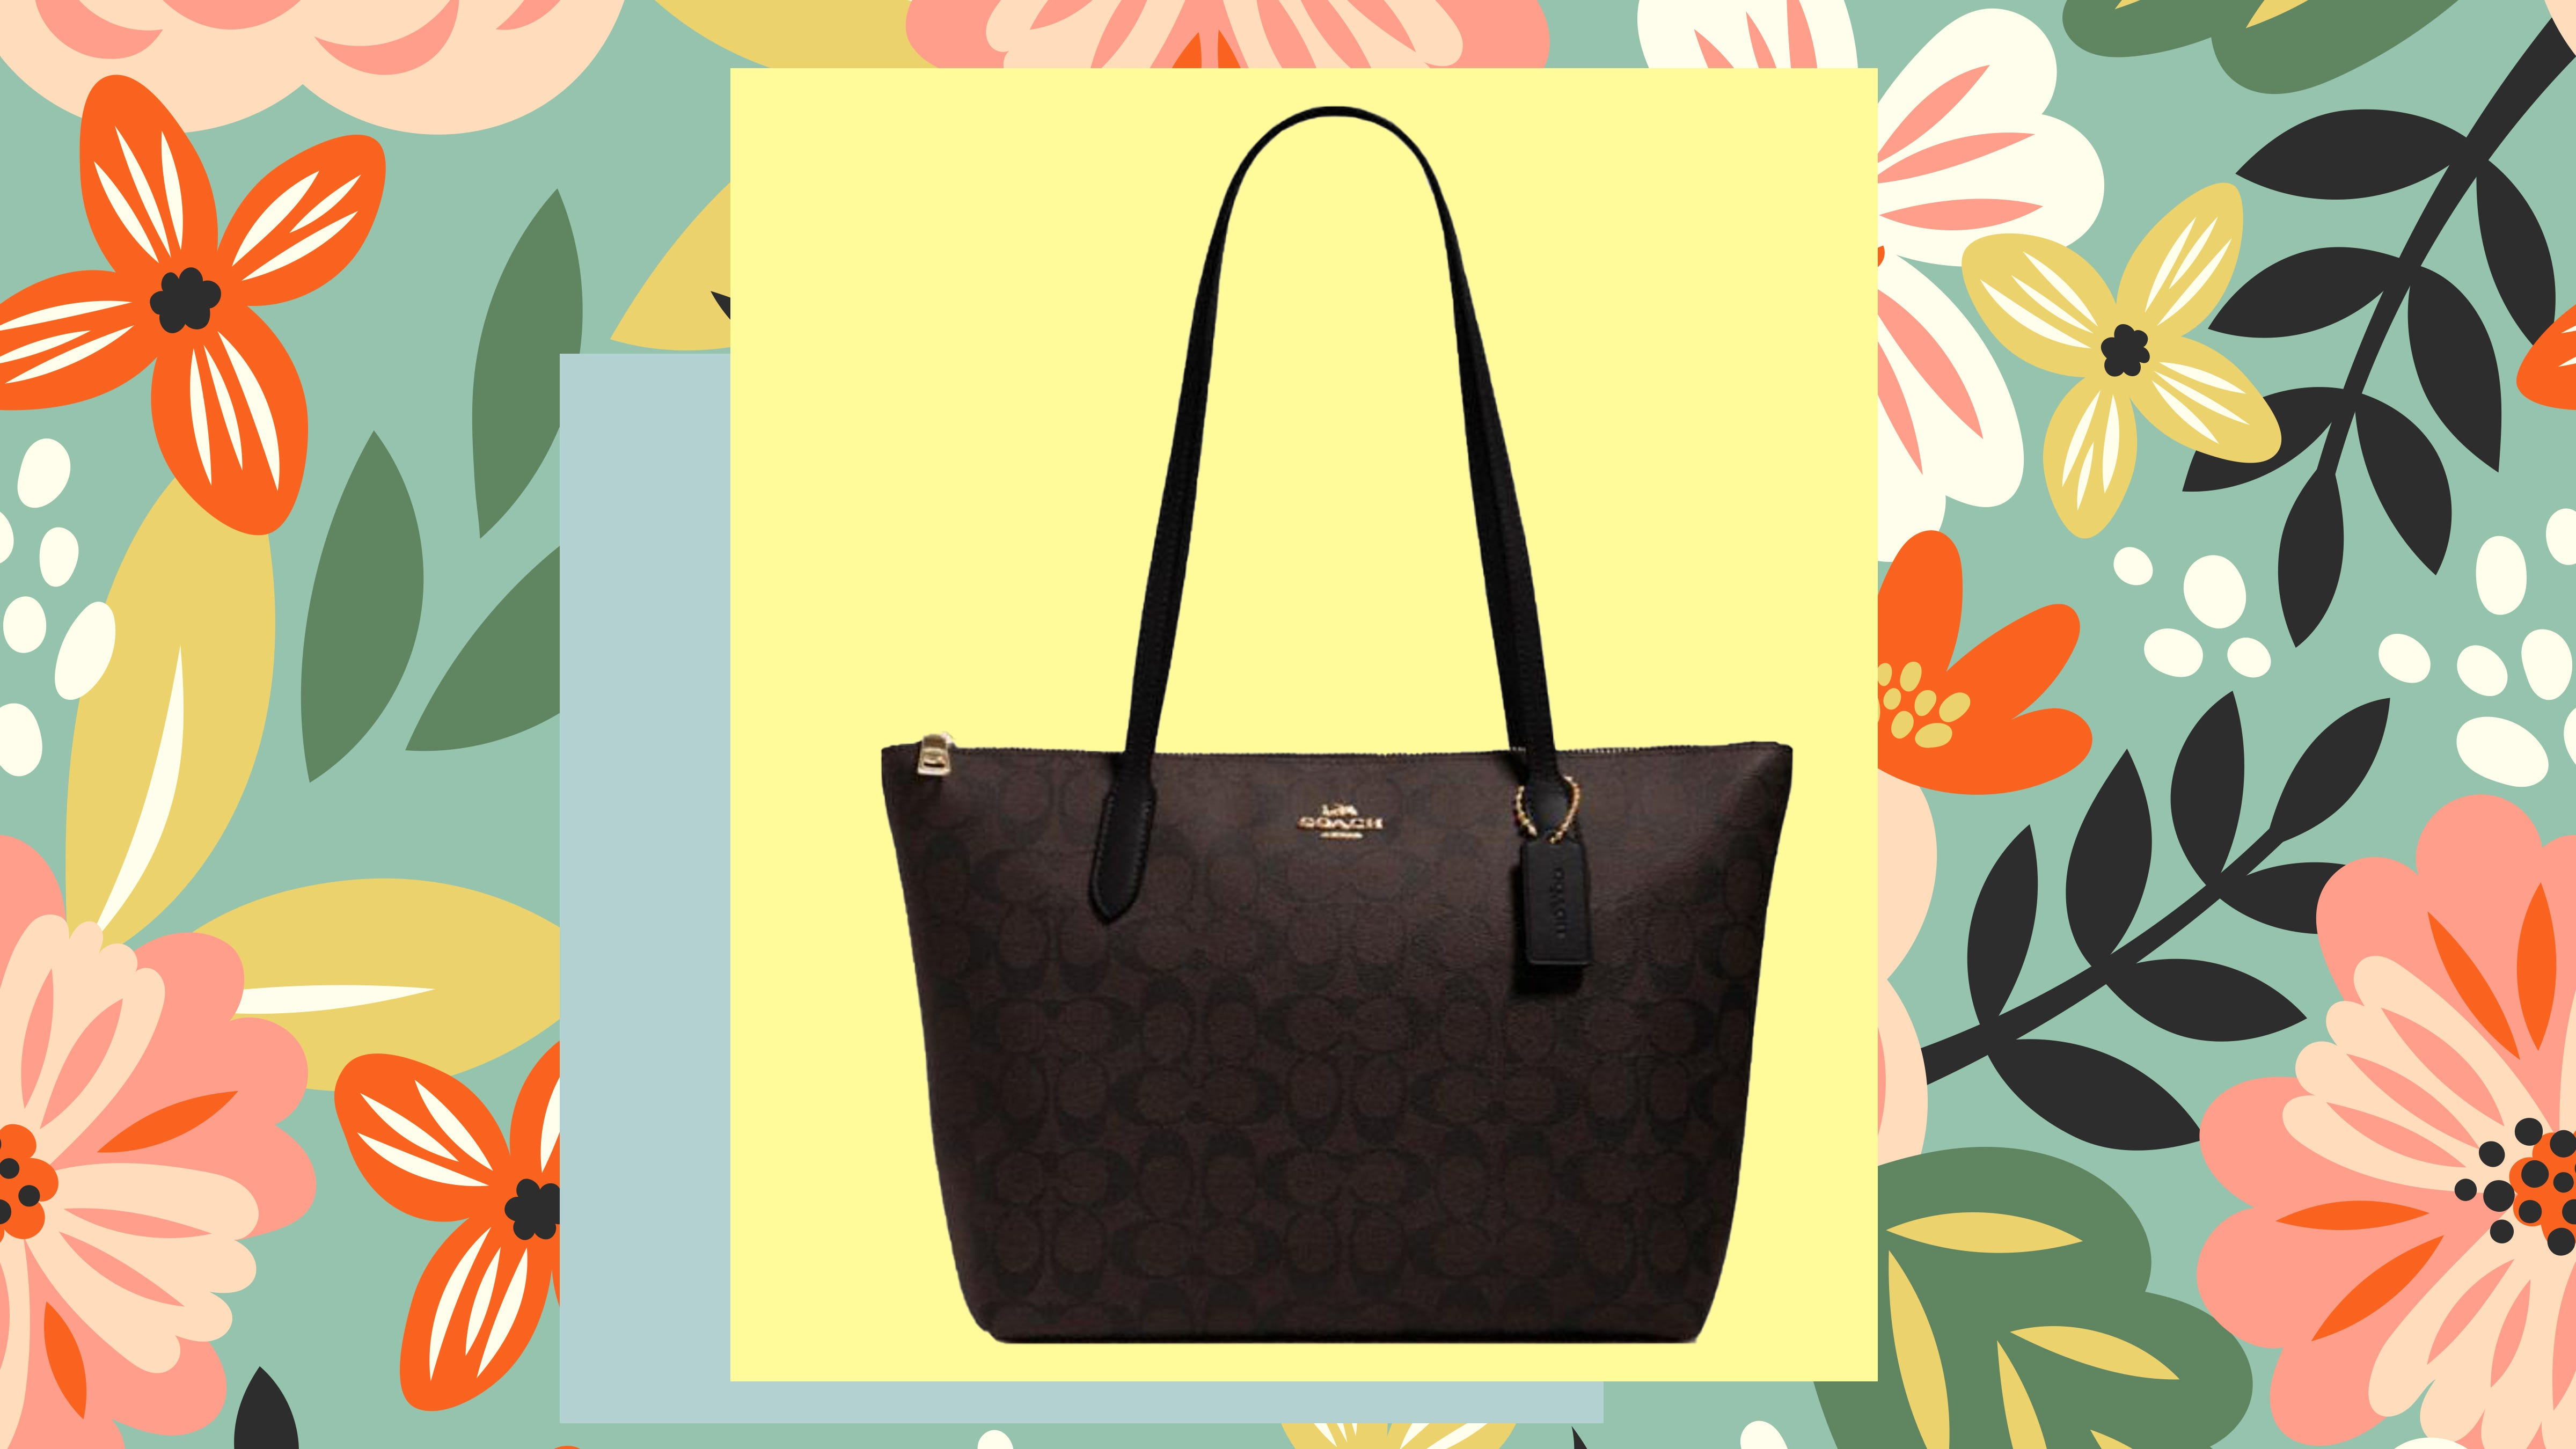 Coach Outlet is having a huge sale on new spring bags and more